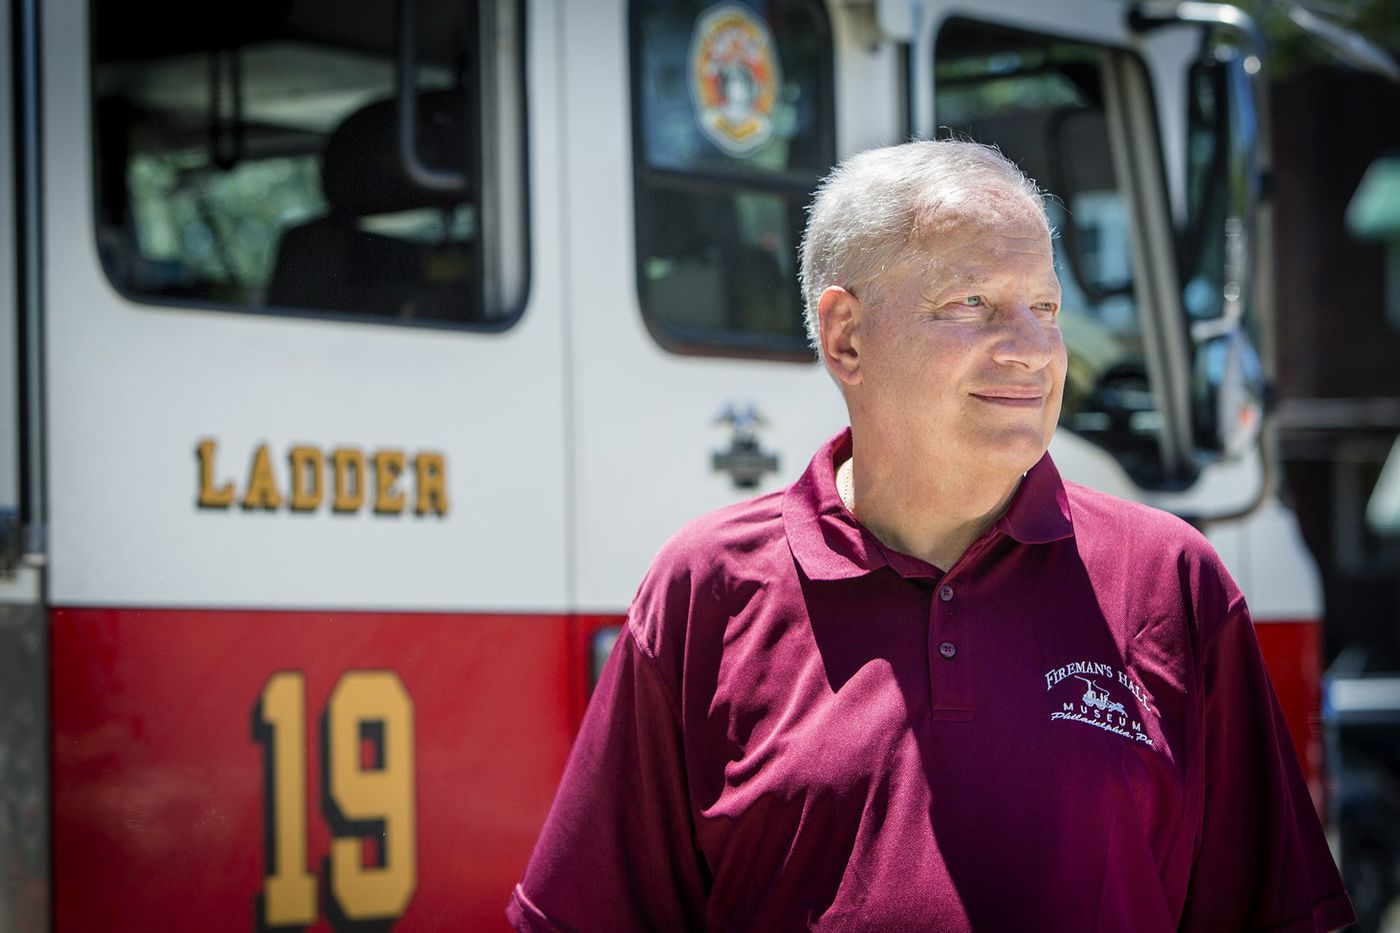 Philly firefighter's book details 37 years of blood, pranks and the smell of death | We the People